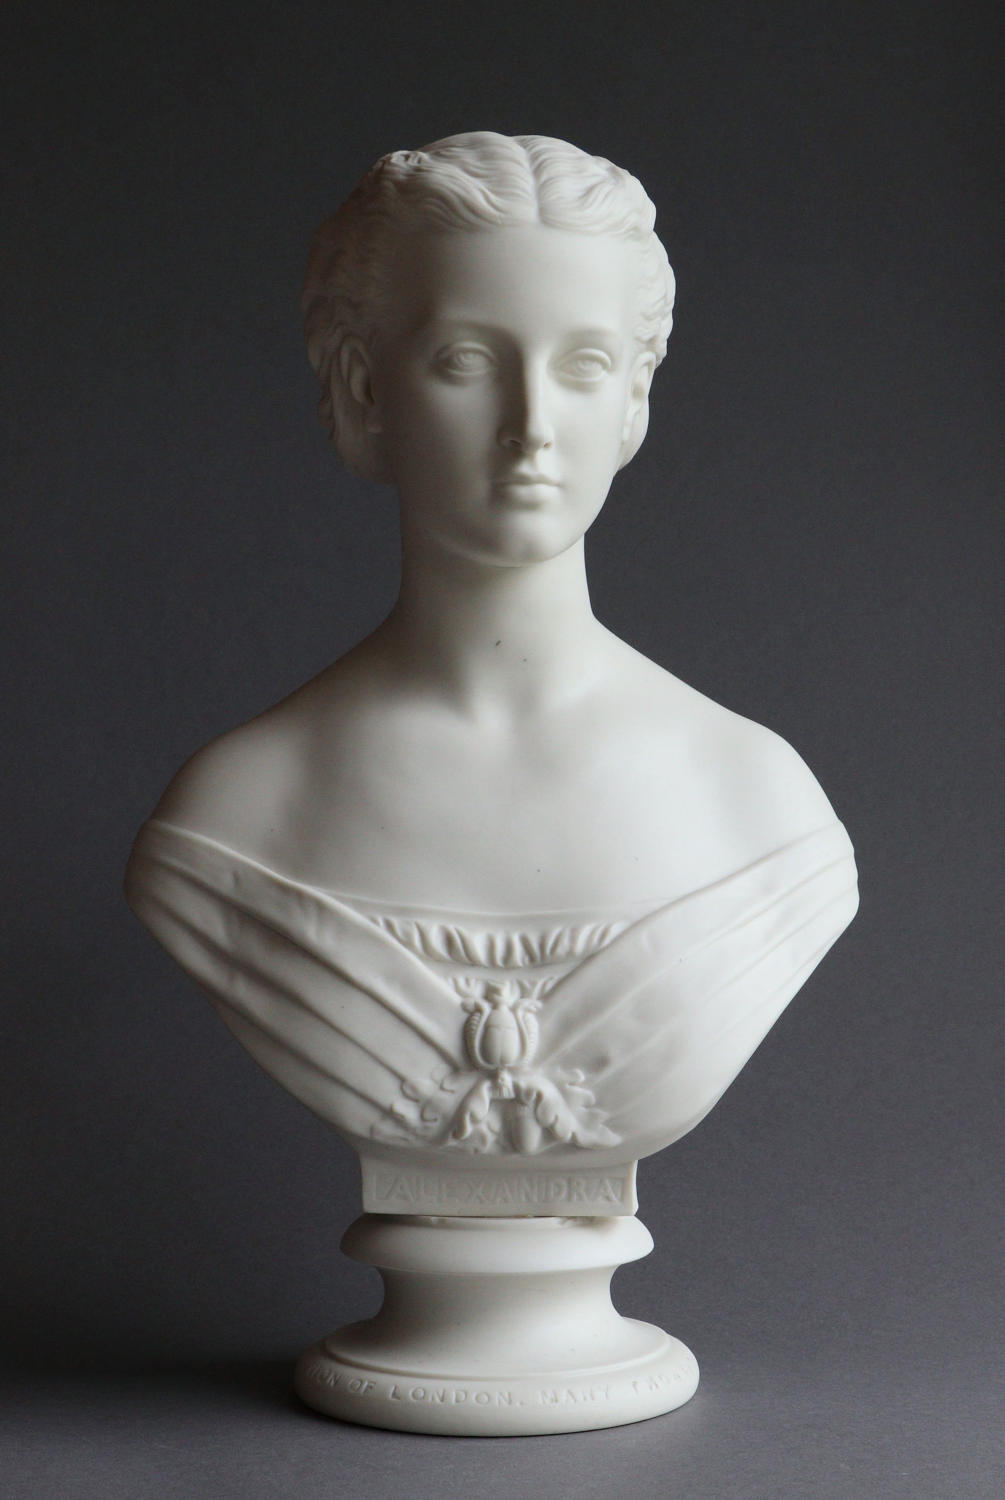 A Parian bust of Princess Alexandra by Copeland